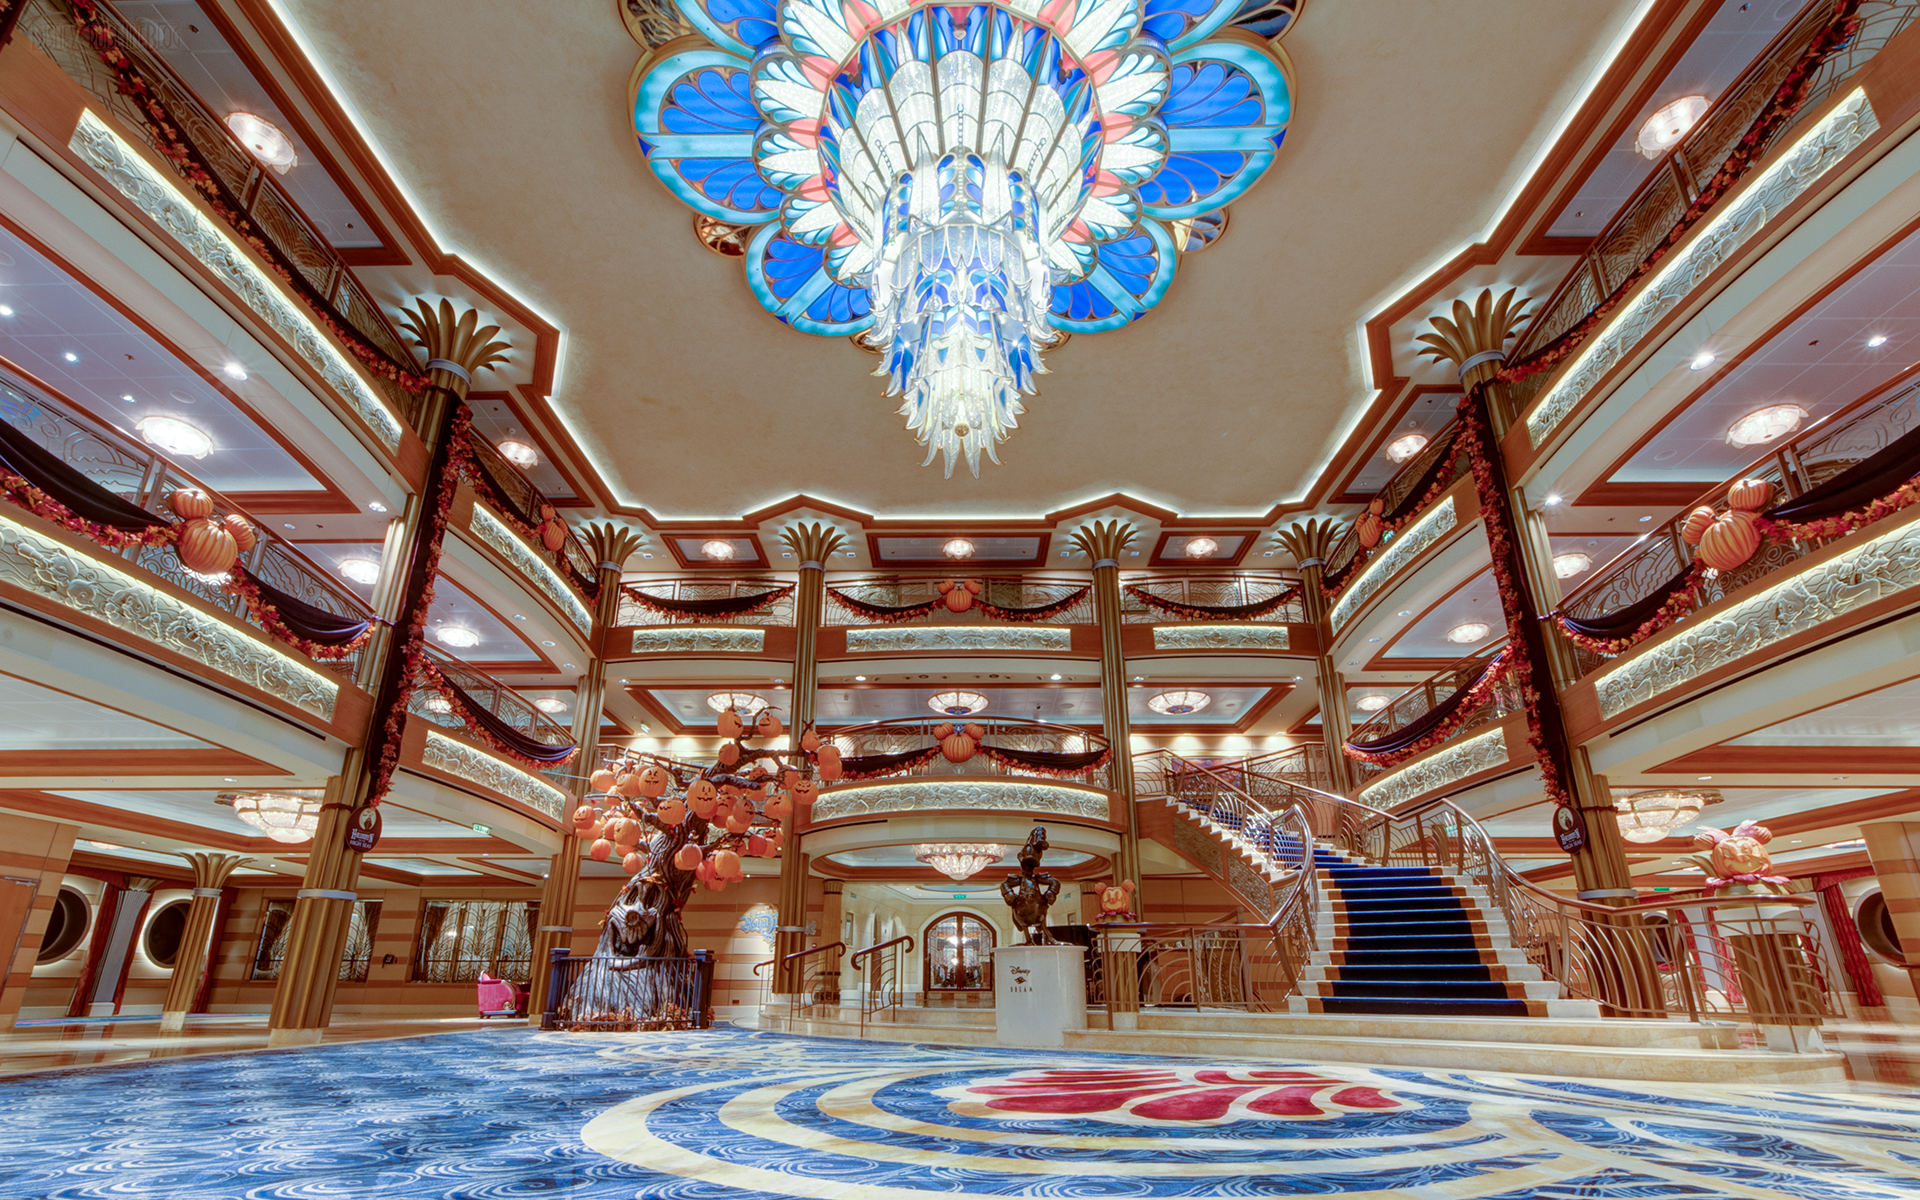 Disney Cruise Inspired Wallpapers The Disney Cruise Line Blog